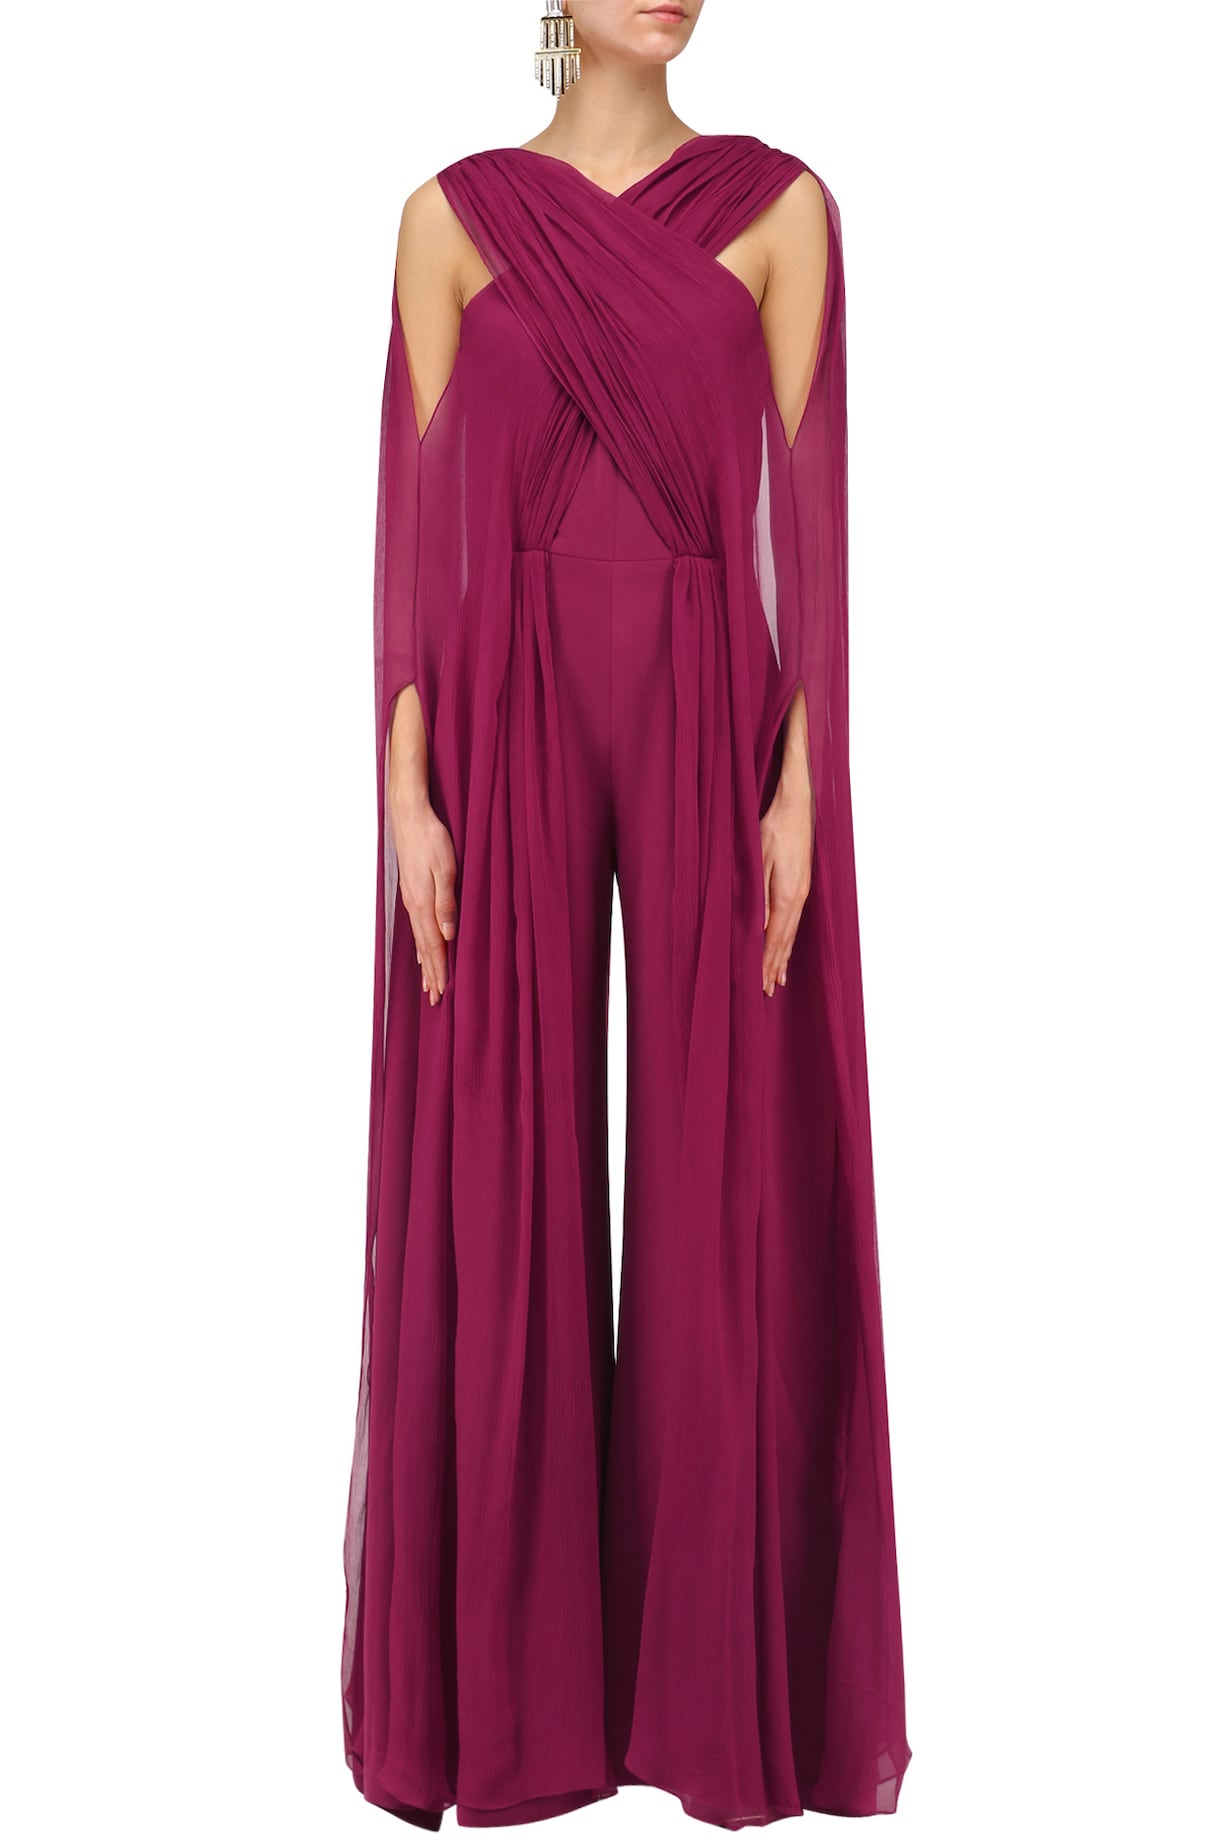 LOLA by Suman B Jump Suits